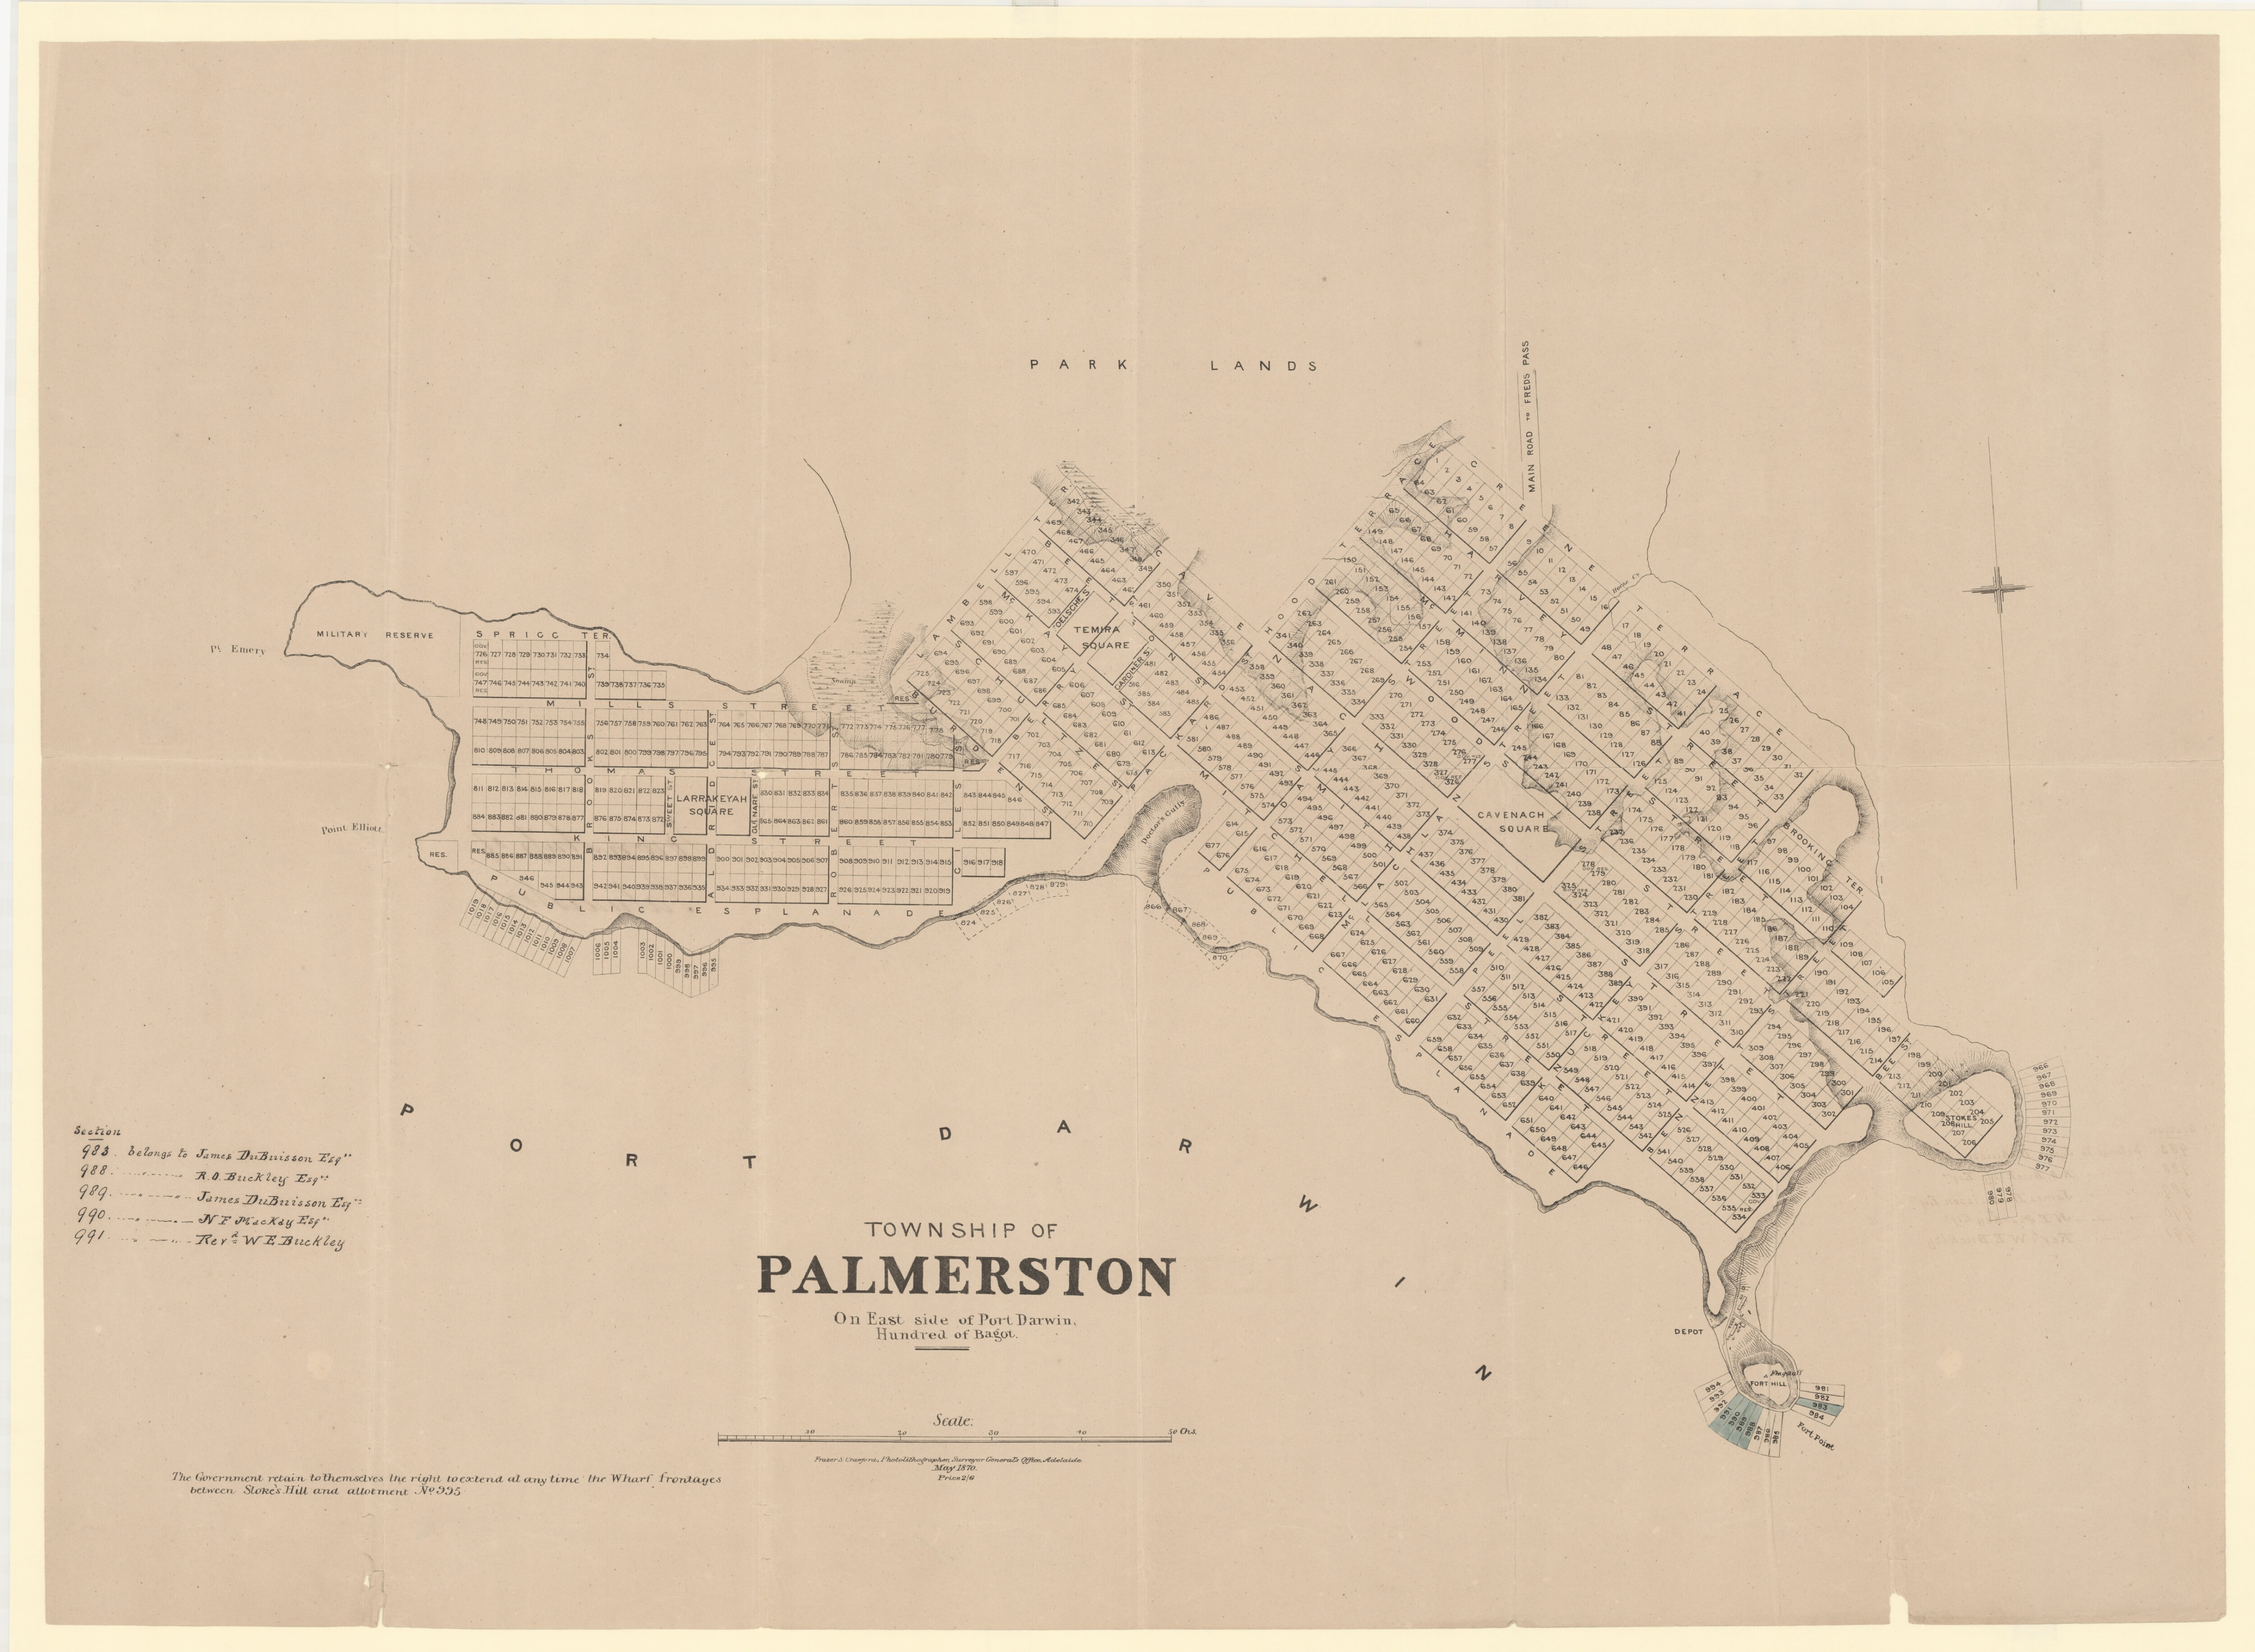 Plan of the Township of Palmerston on east side of Port Darwin, Hundred of Bagot. 1870